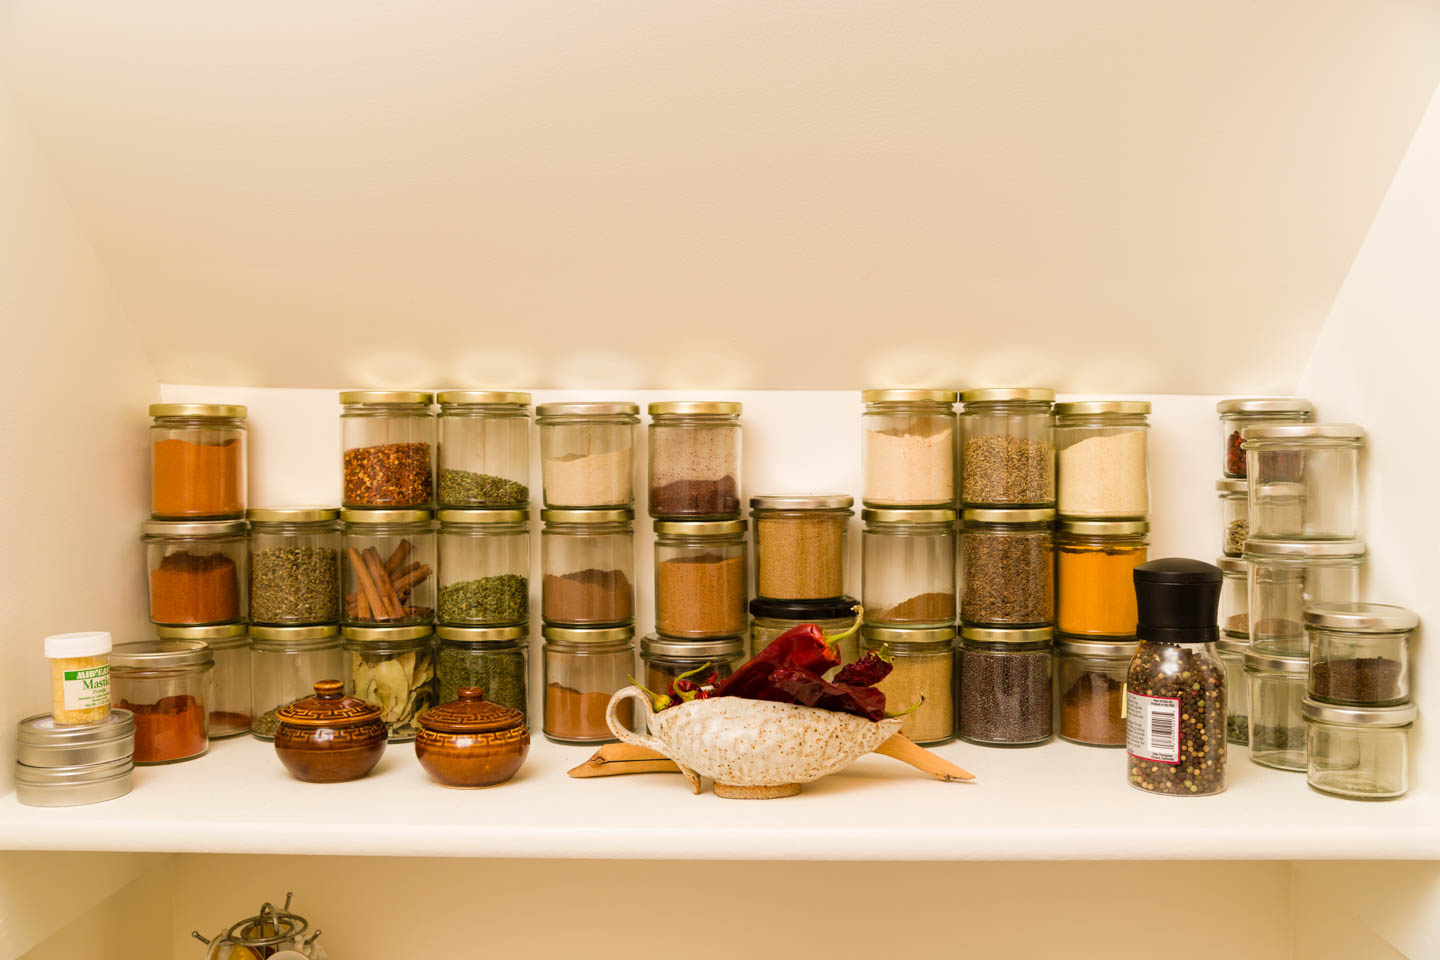 Spice rack at the home kitchen